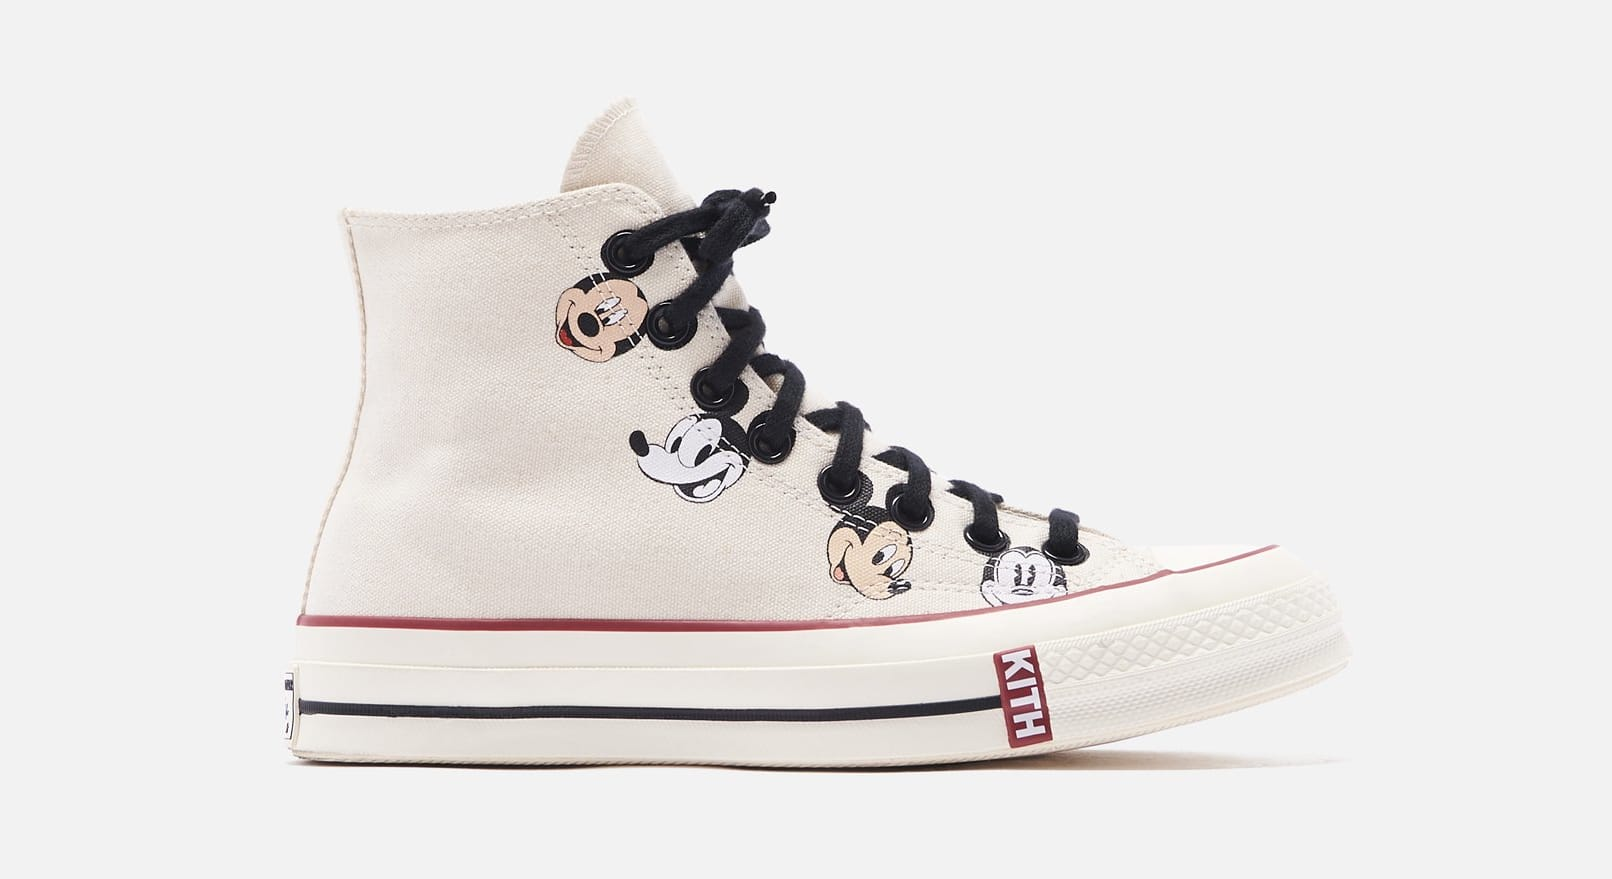 Kith x Disney Sneaker & Apparel Collection Coming Soon: Release Details